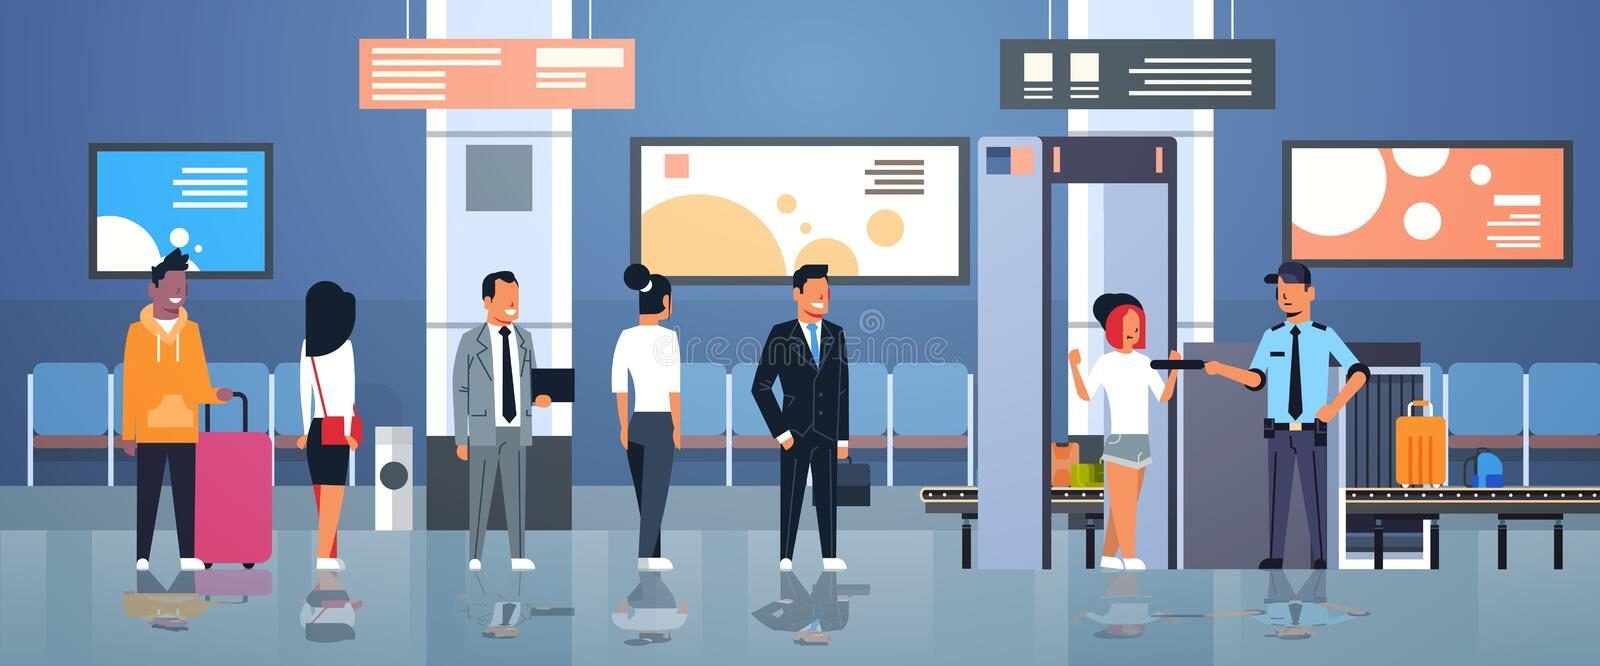 Police officer checking passengers and luggage at metal detector x-ray gate full body scanner airport security check stock illustration